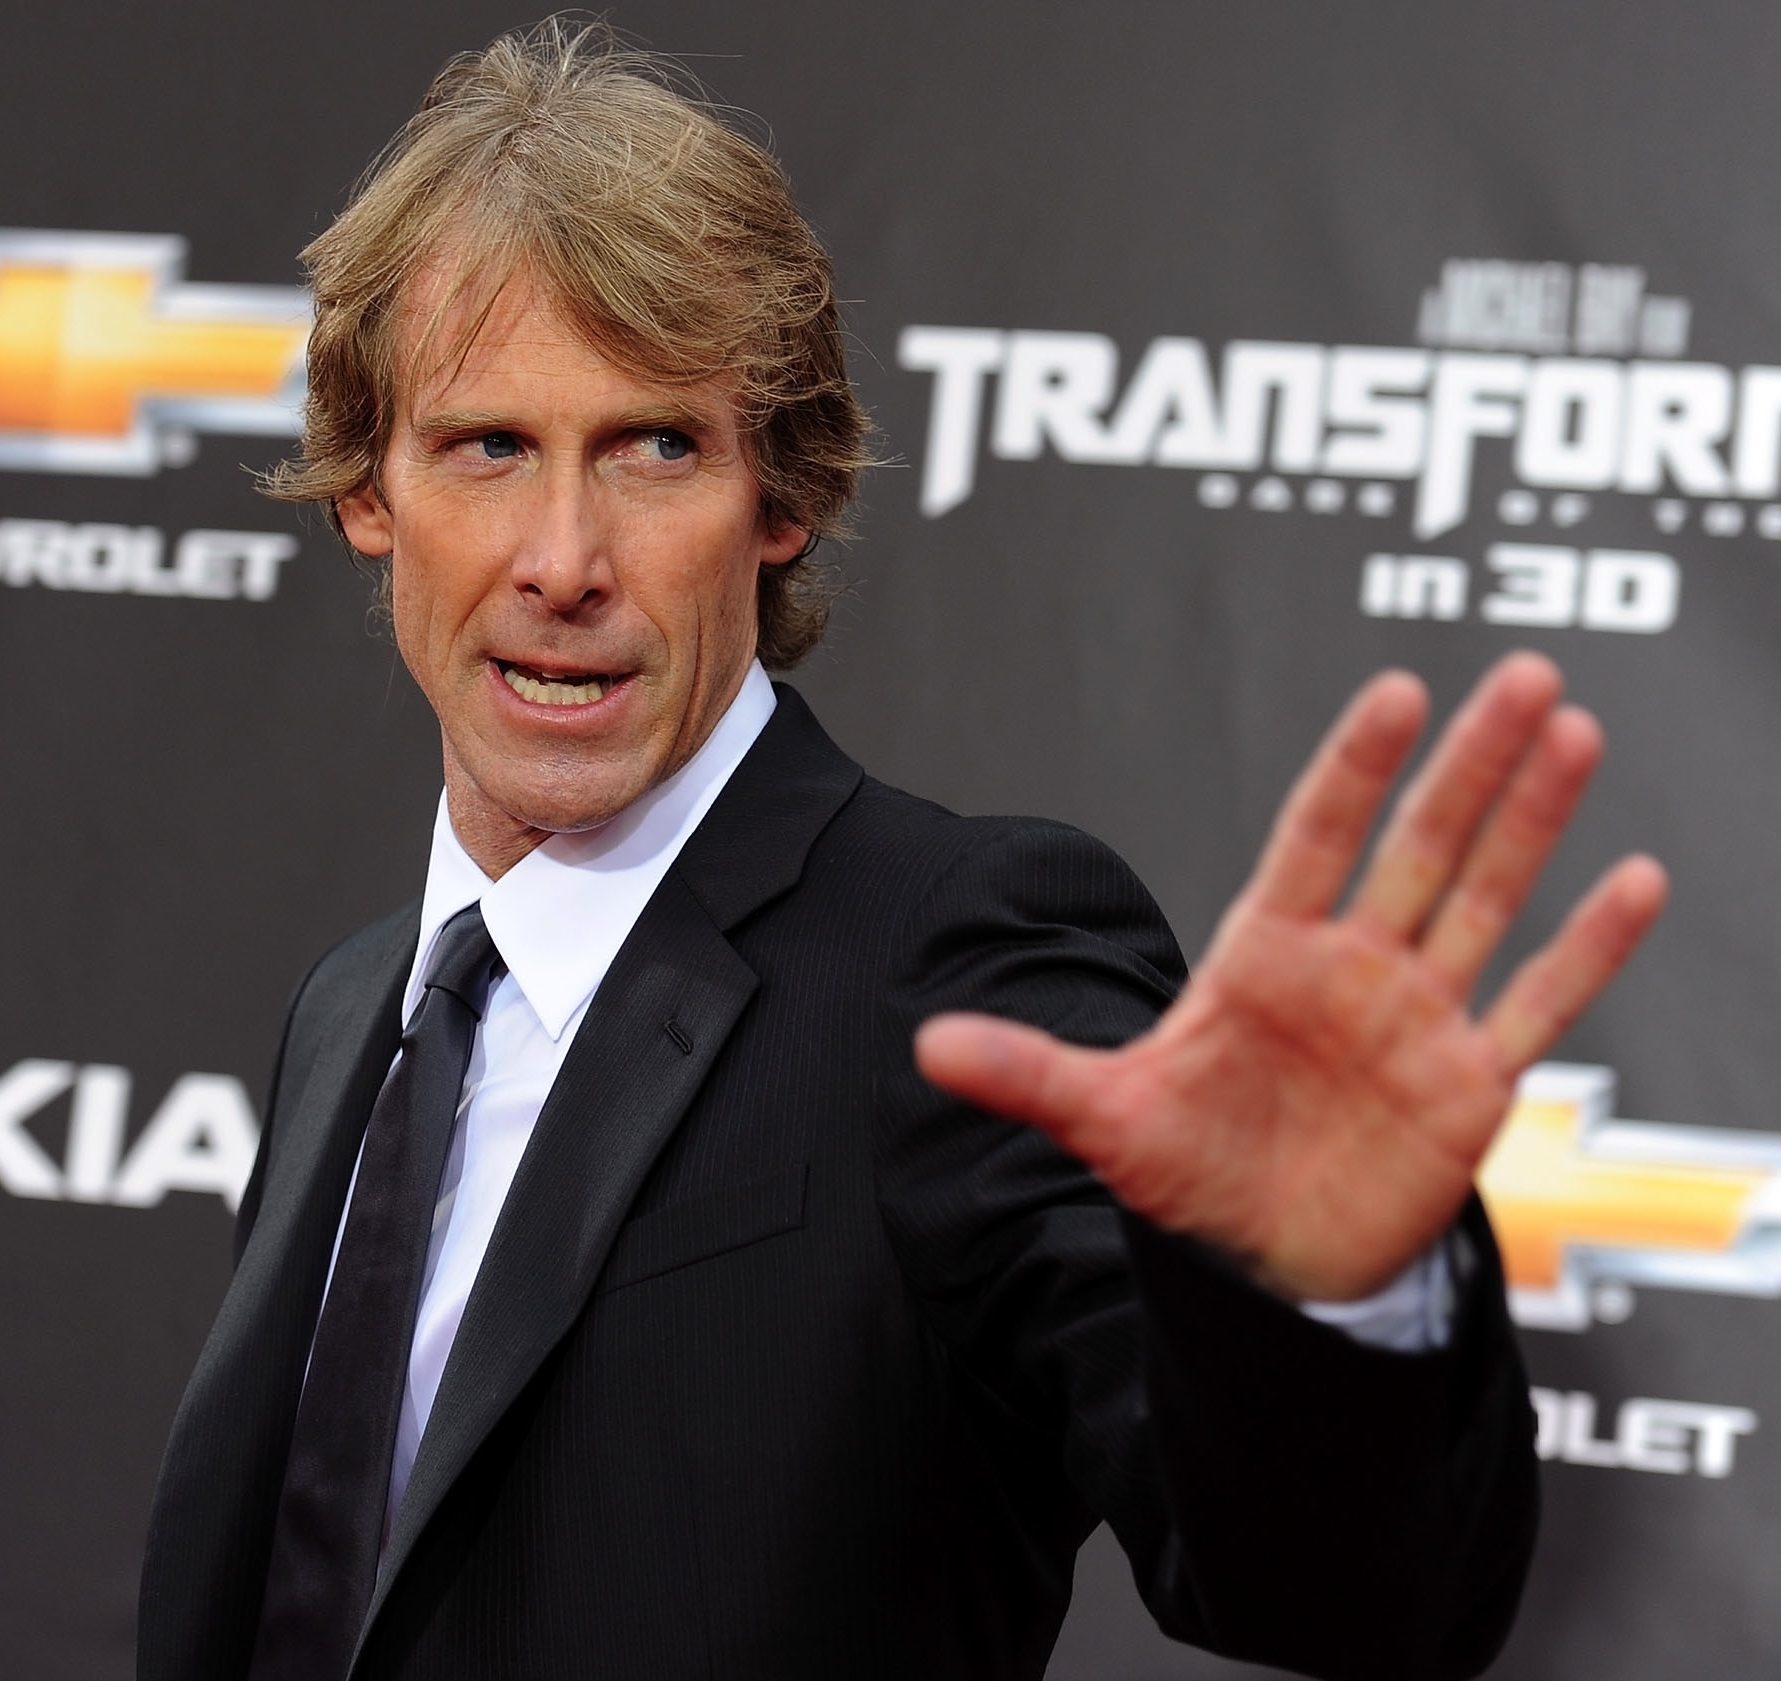 michael bay transformers46221 e1607505331337 20 Thrilling Facts About 1996 Action Movie The Rock